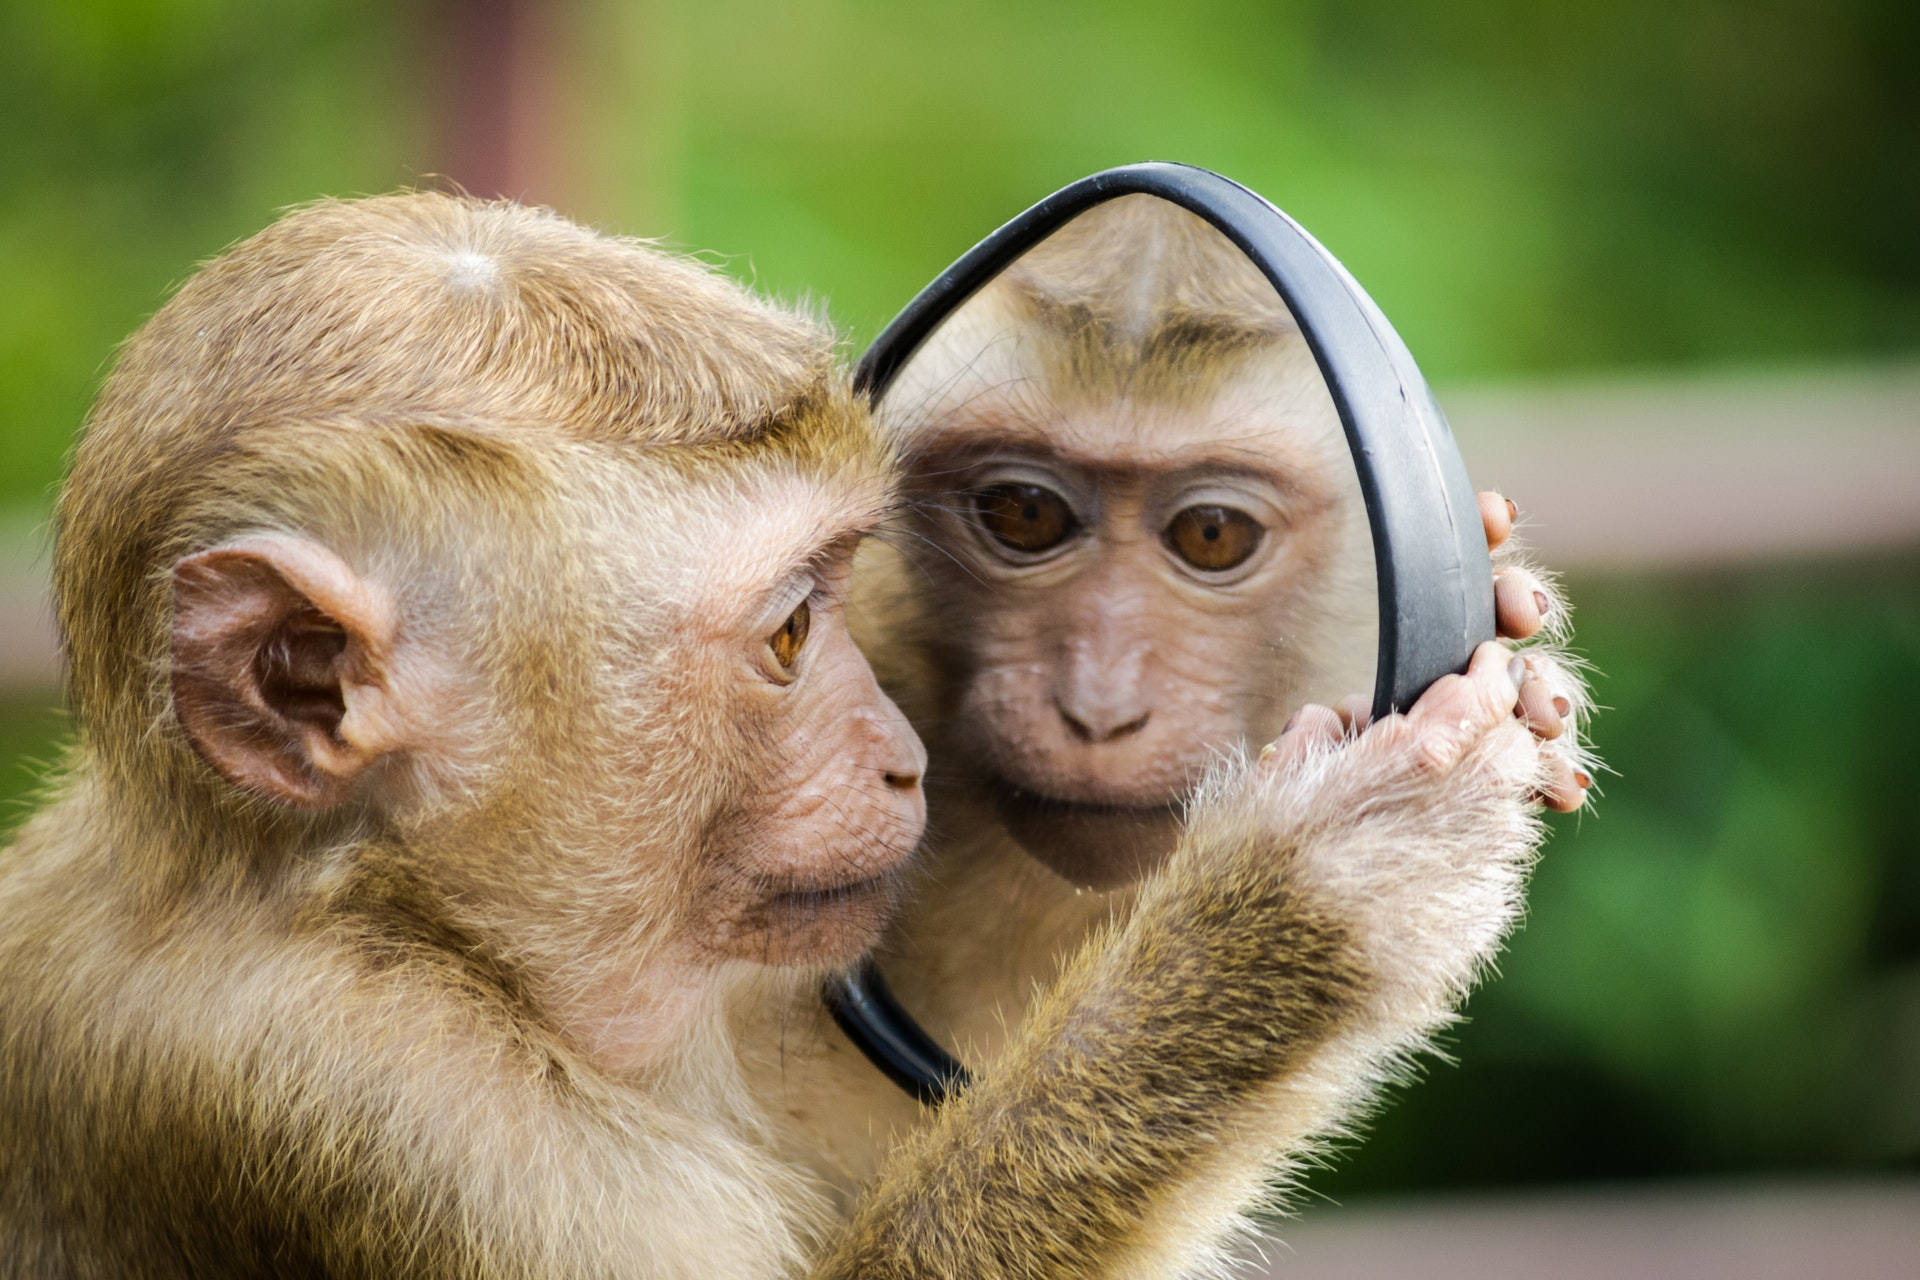 small monkey looks into a mirror